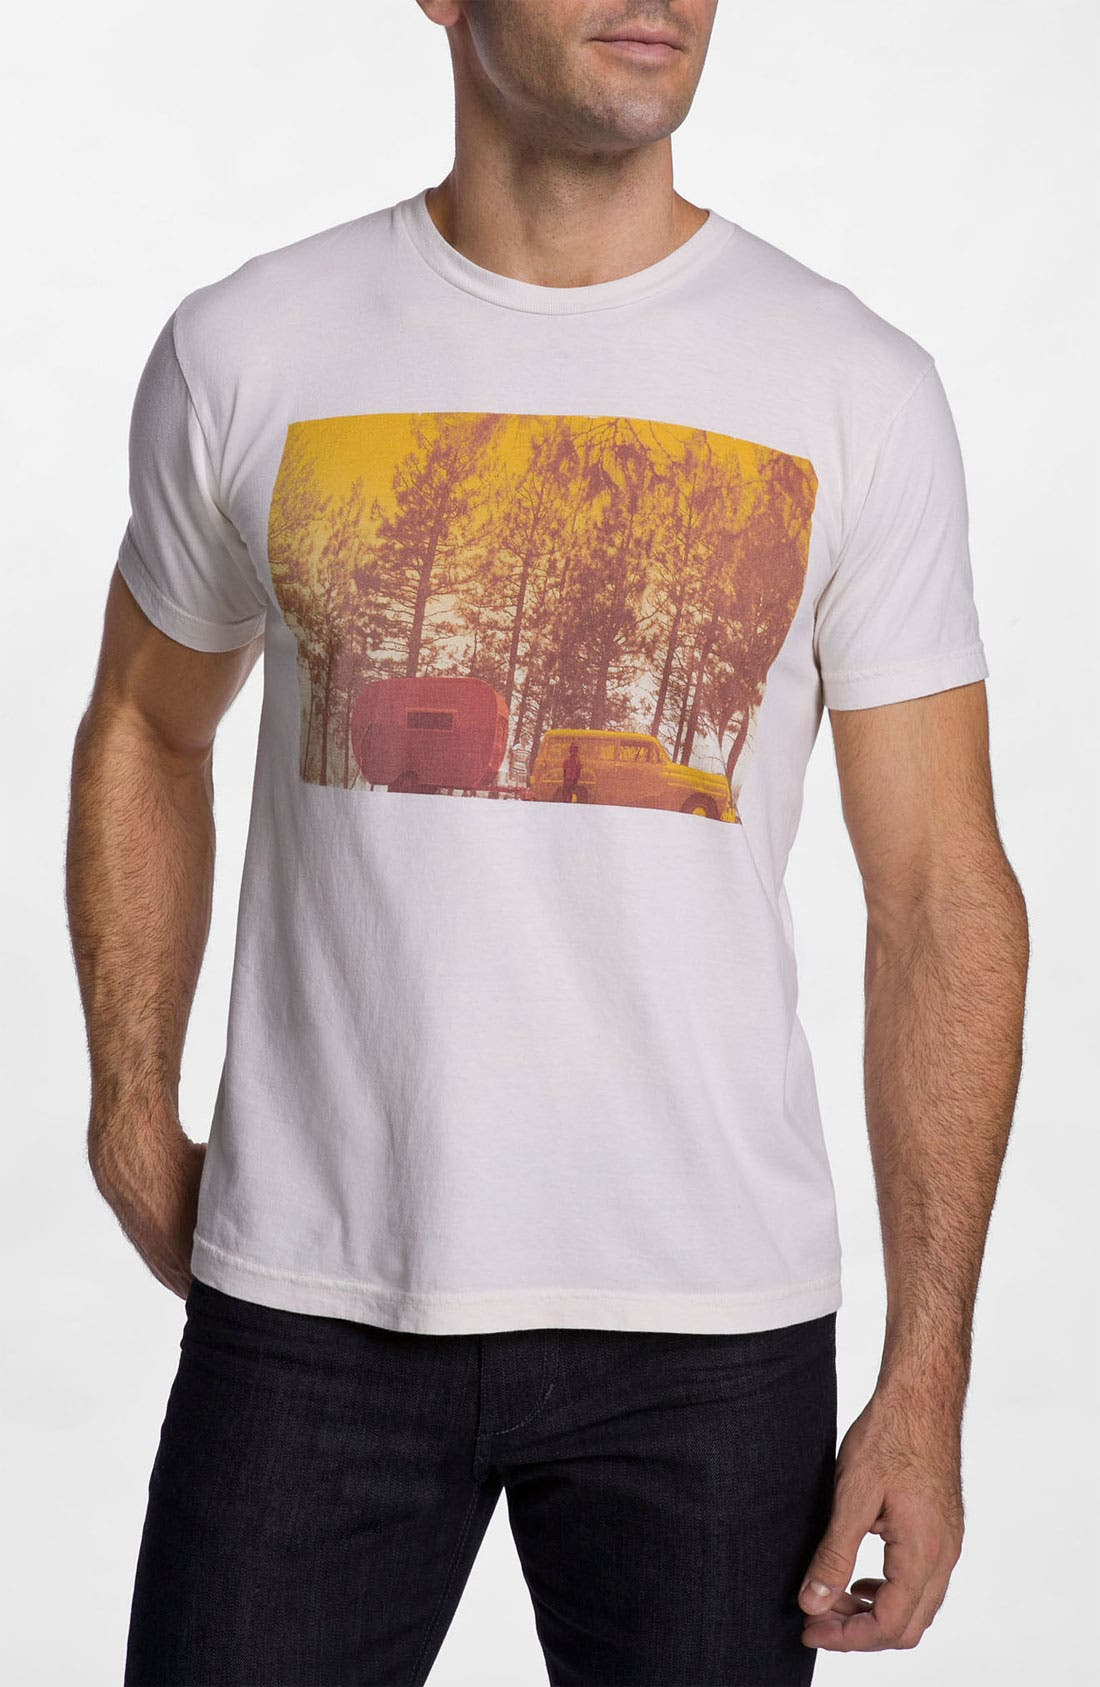 Main Image - The Poster List '1950s Camping' T-Shirt